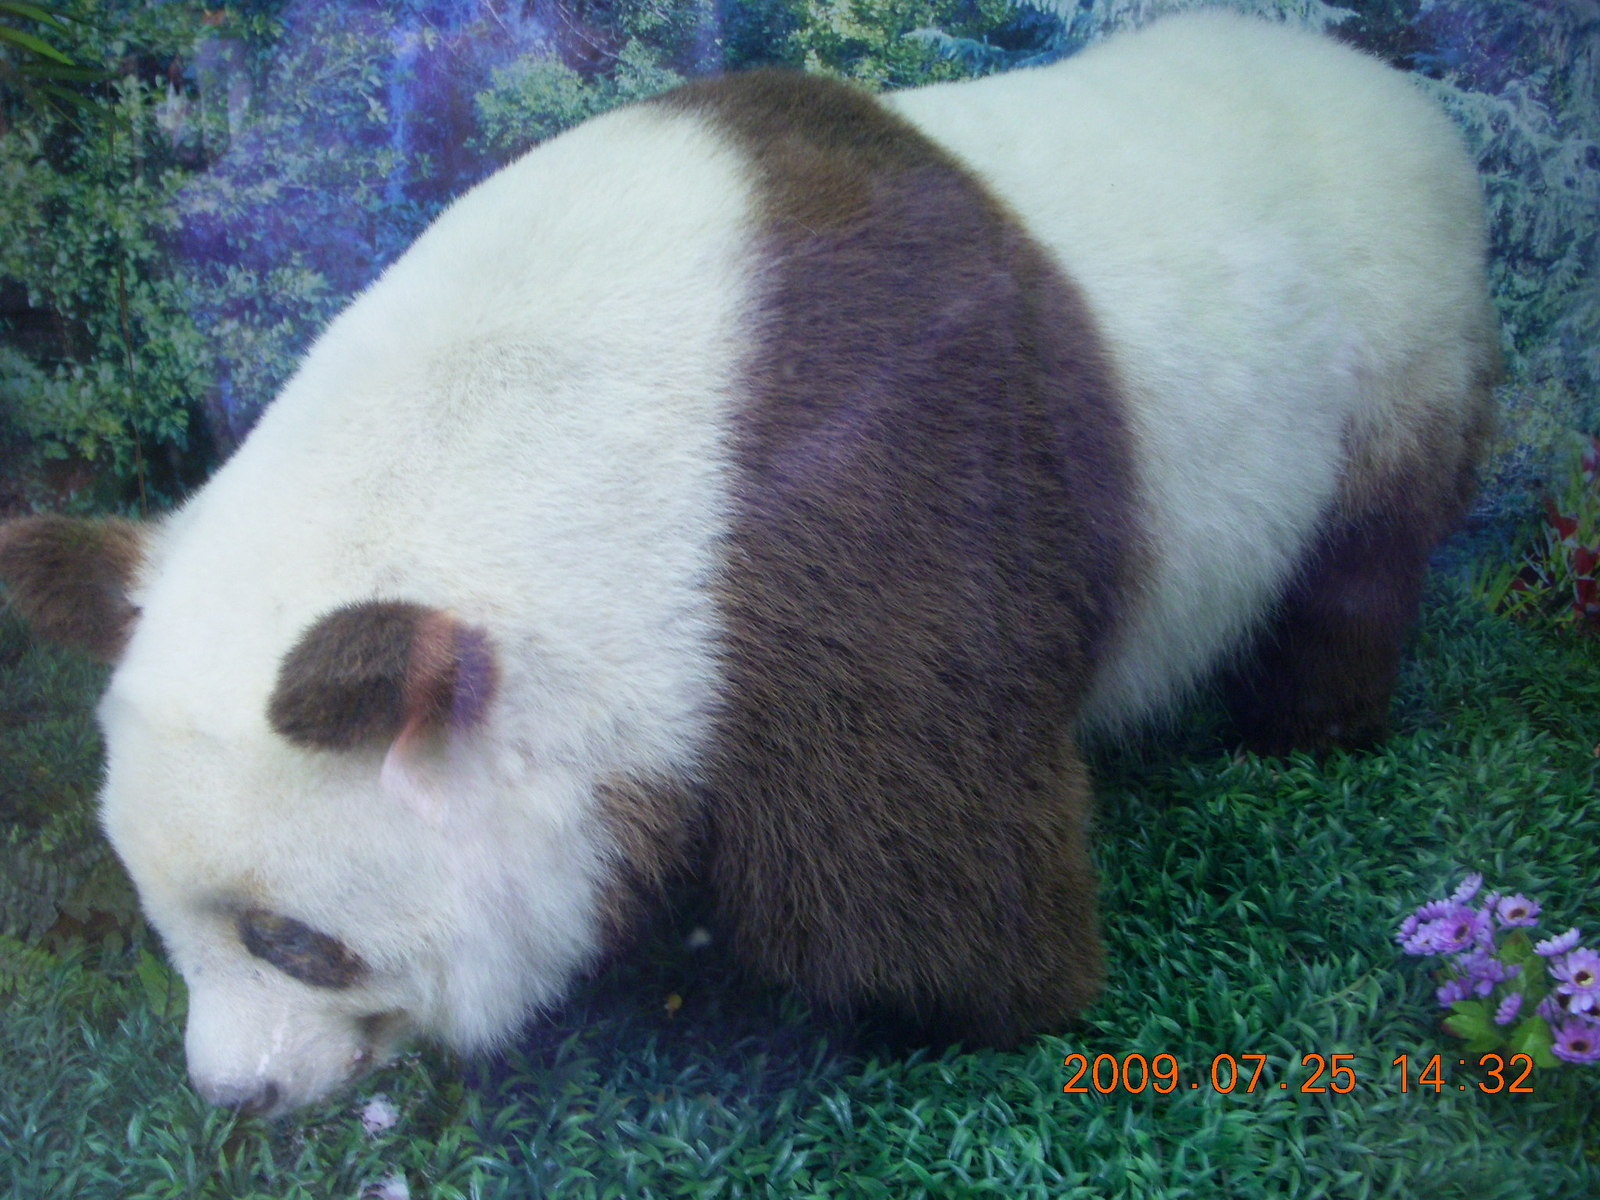 China eclipse - Guilin SevenStar park - panda mockup